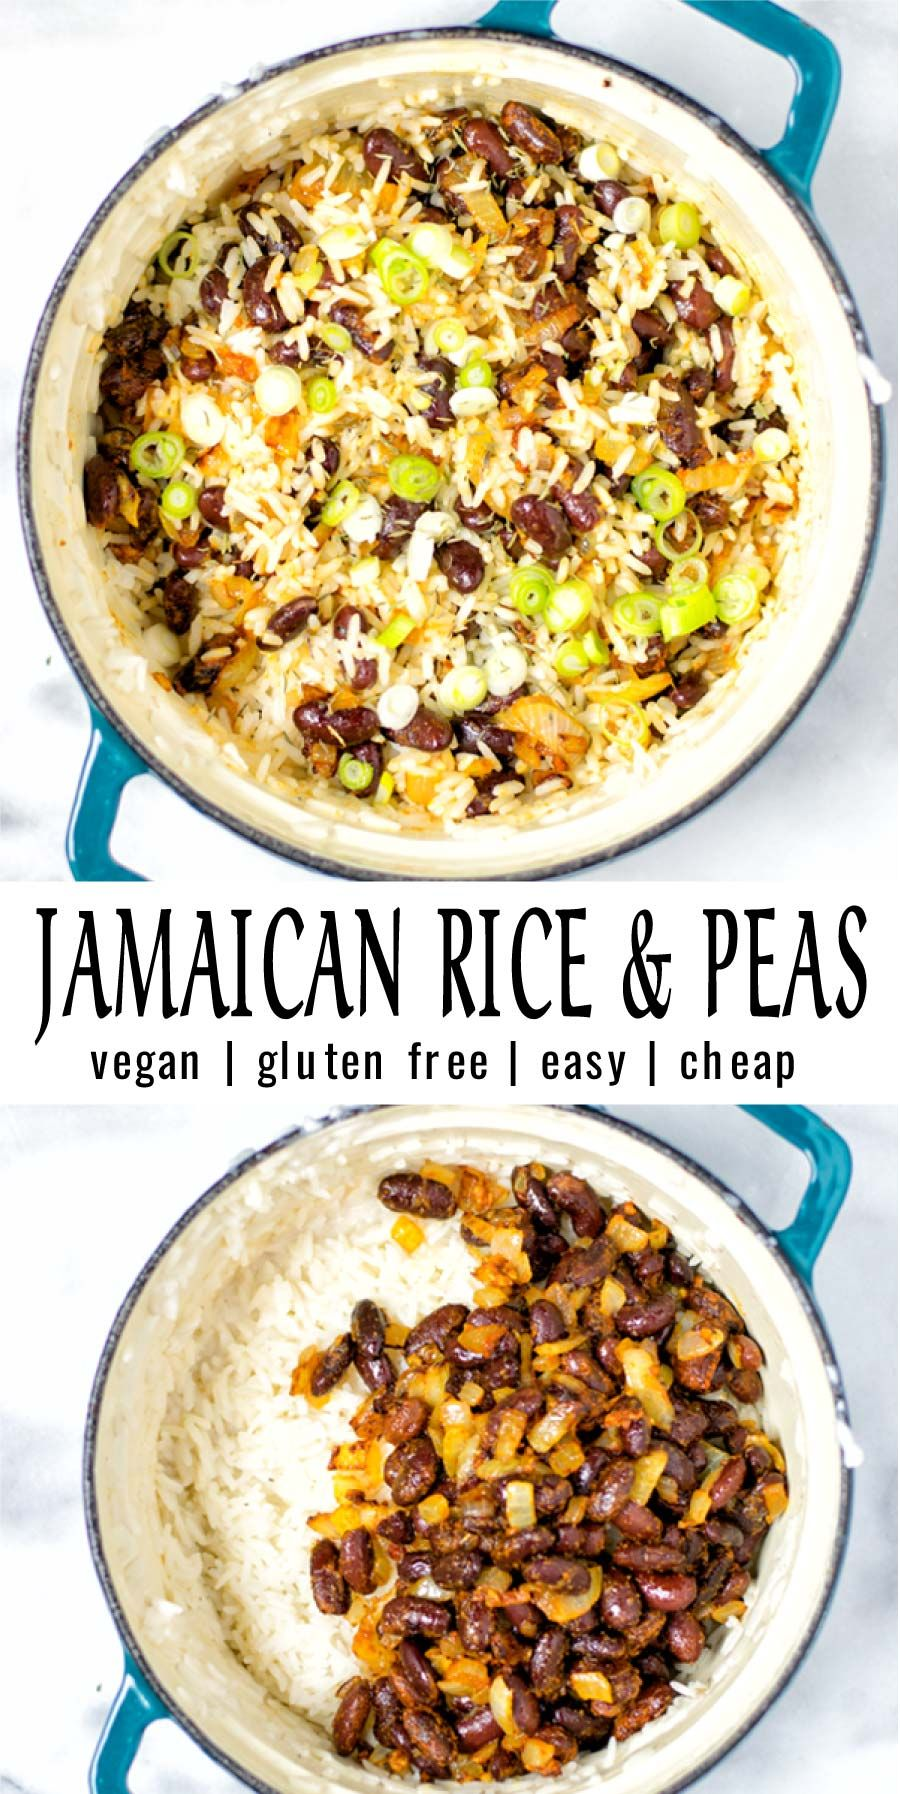 jamaican rice and peas  recipe in 2020 with images